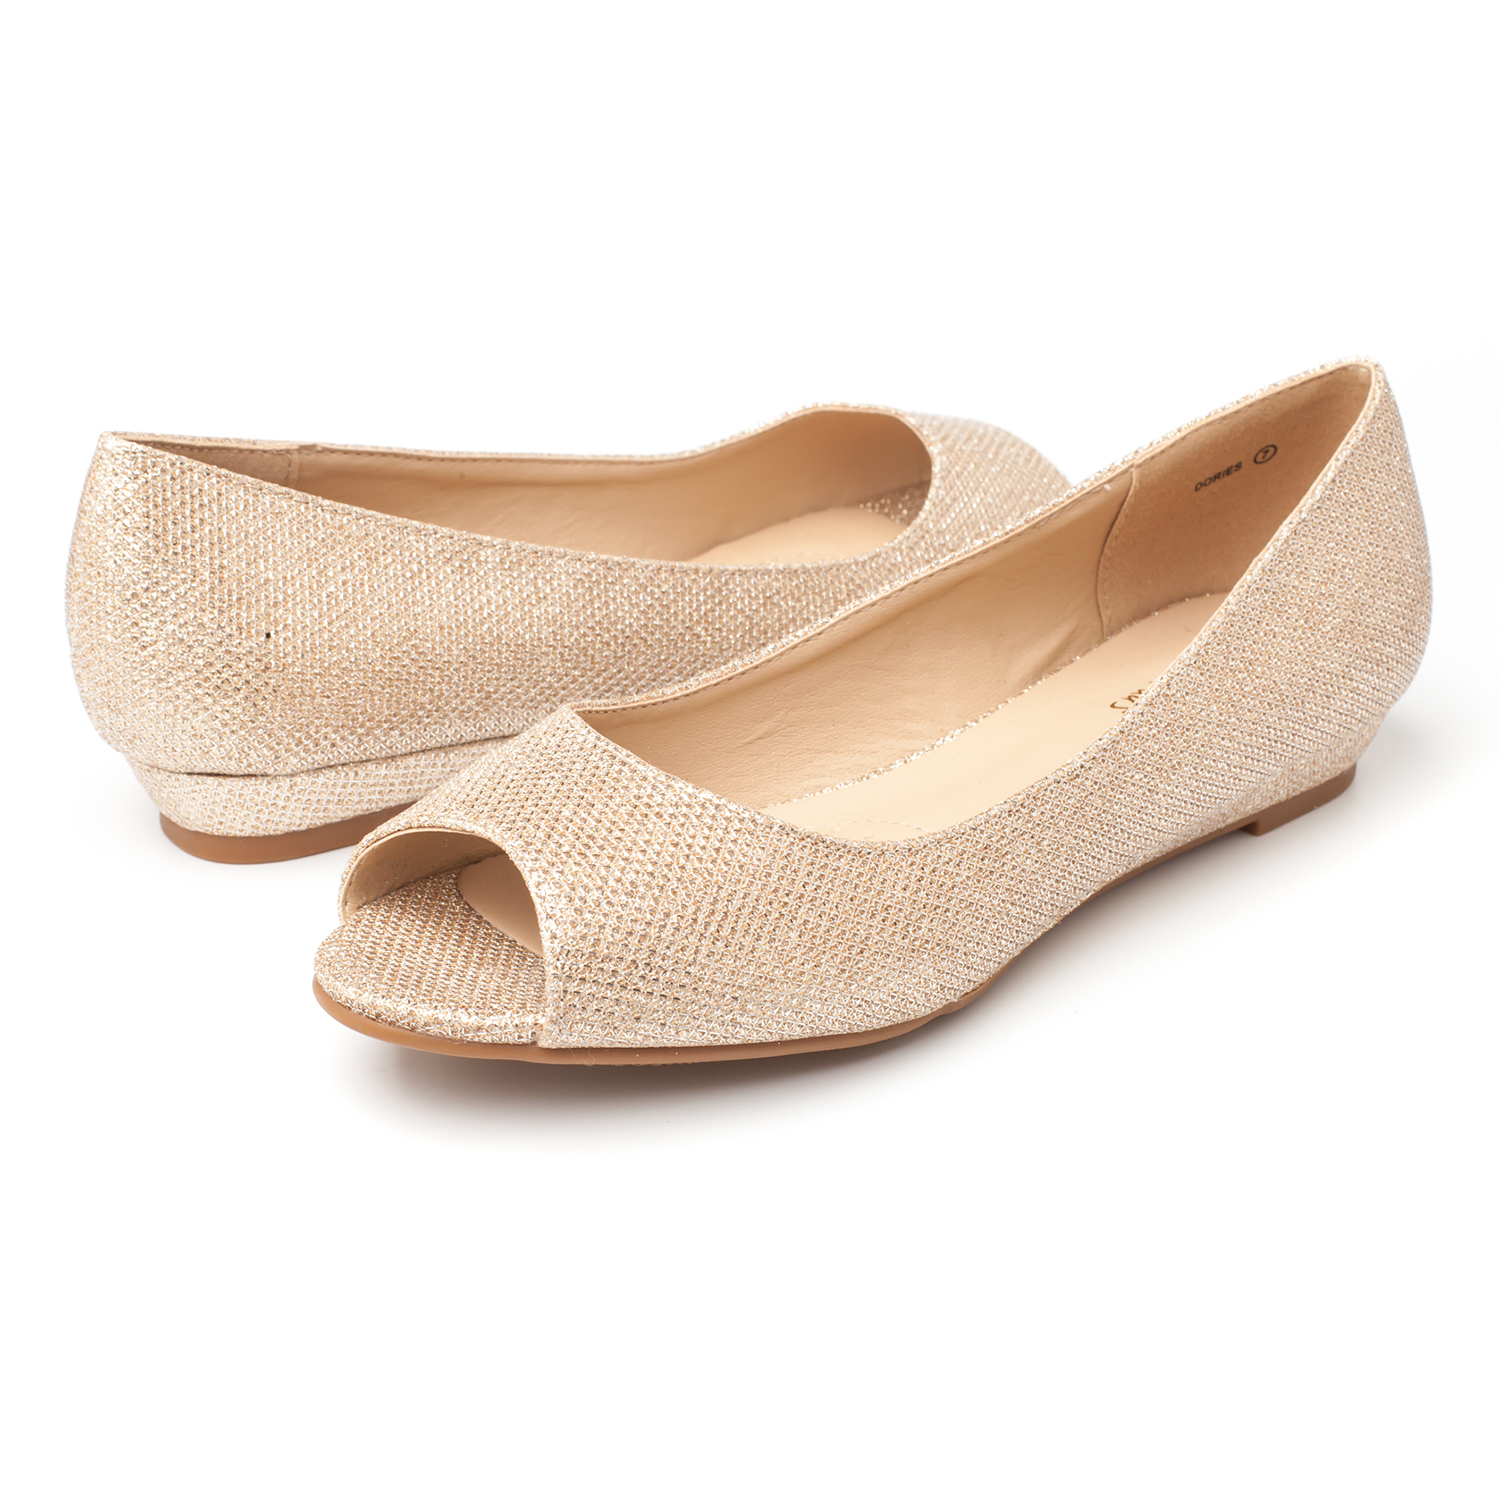 DREAM-PAIRS-Womens-Ballet-Flats-Low-Heel-Open-Toe-Slip-On-Dress-Flat-Shoes thumbnail 19